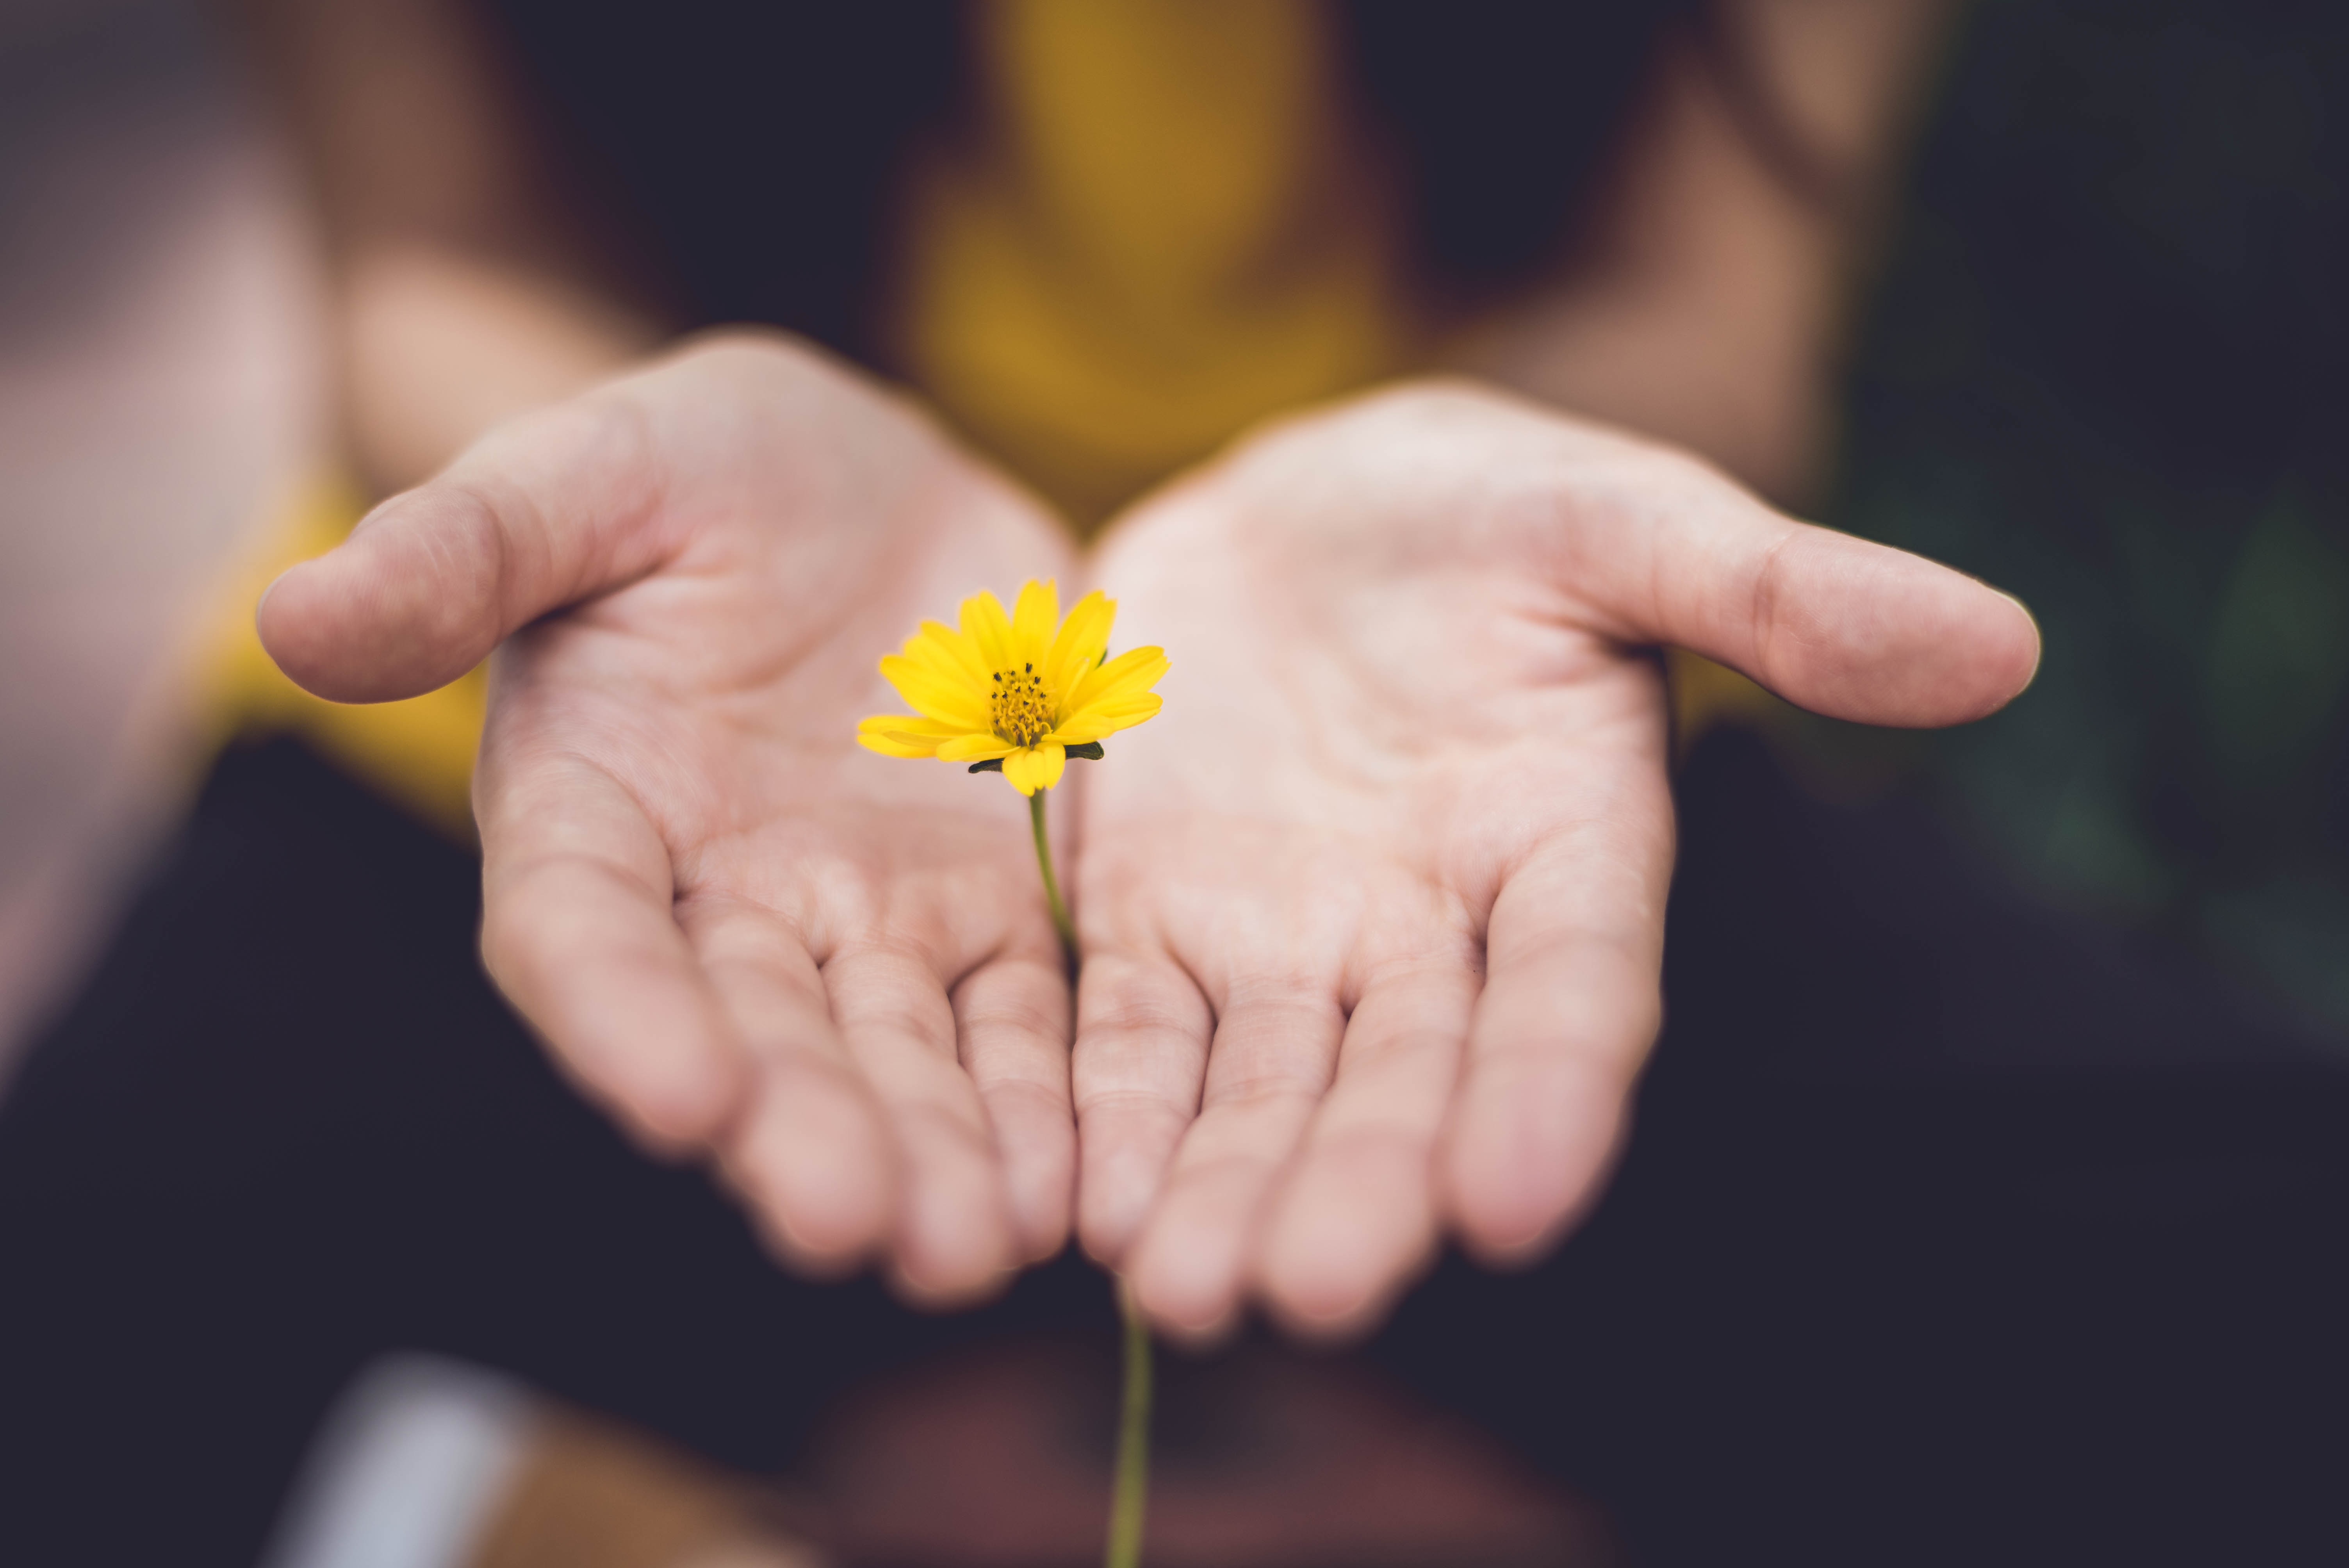 A woman holds her hands open, palms up, with a yellow flower inside.